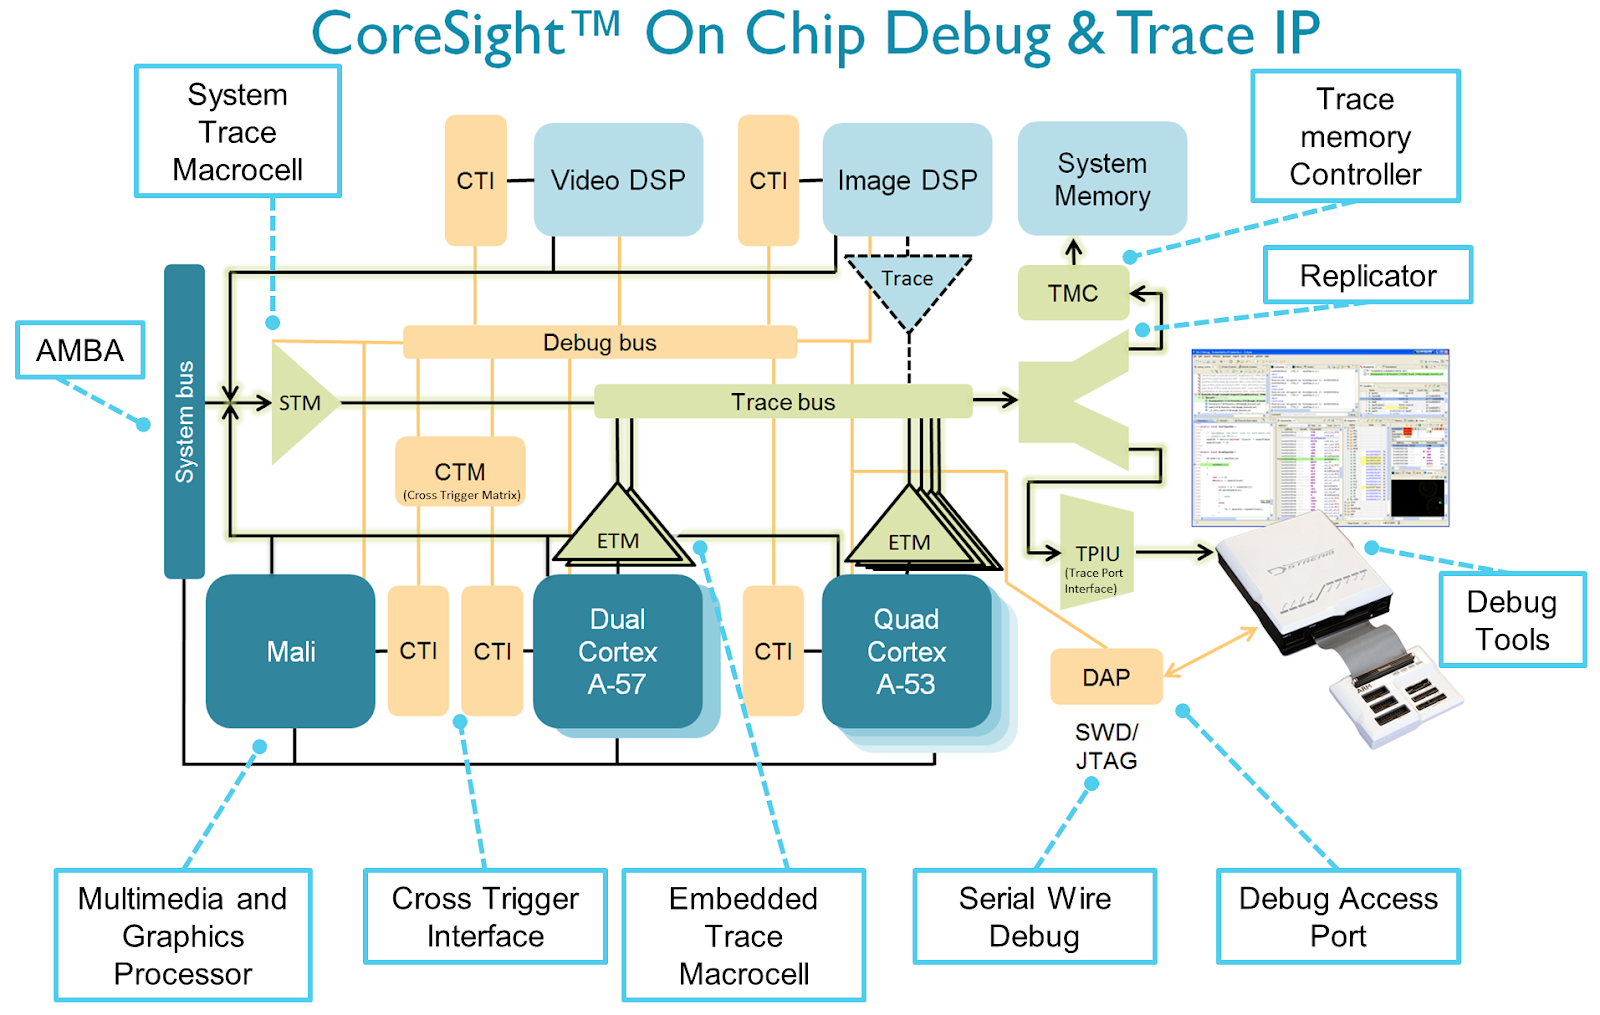 This is an image of the ARM CoreSight on-chip debug architecture, showing many on-chip debug and trace options. The full diagram is at https://www.arm.com/assets/images/Diagram_Large.png. It displays many interconnected components that together enable external debugging tools to gain low-level access to the chip. Typically CoreSight is accessed through a Debug Access Port.